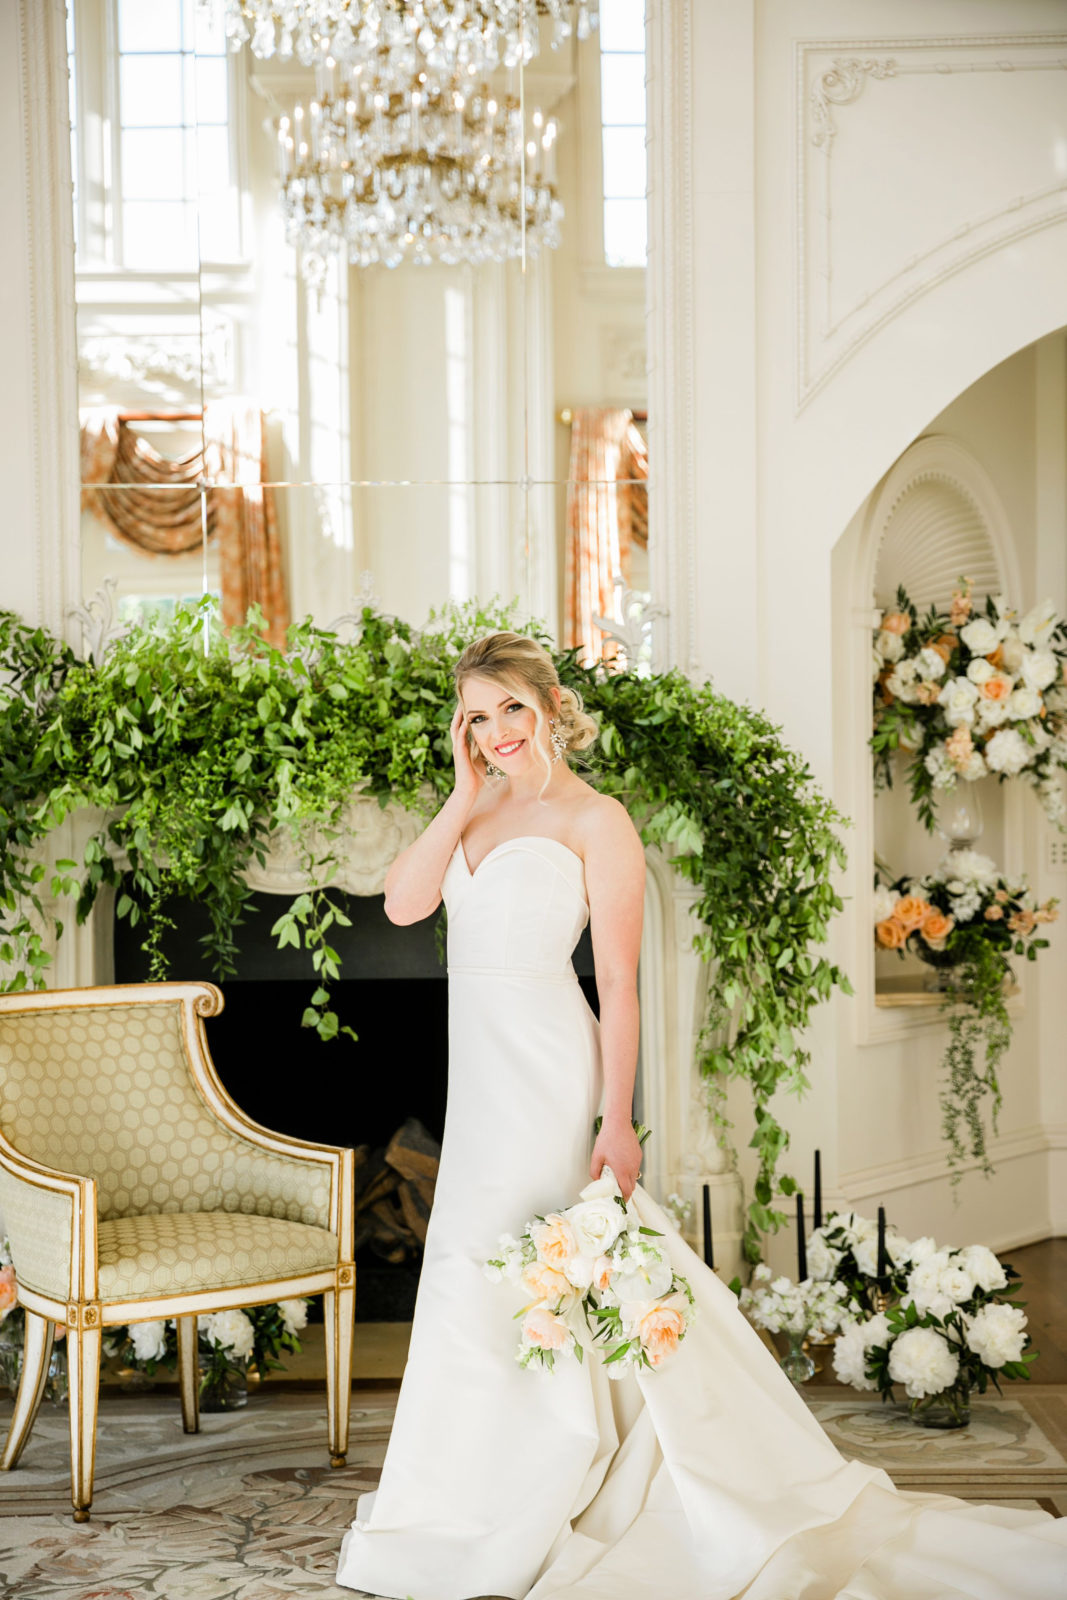 Romantic wedding floral designs: Sophisticated and Chic wedding inspiration on Alexa Kay Events